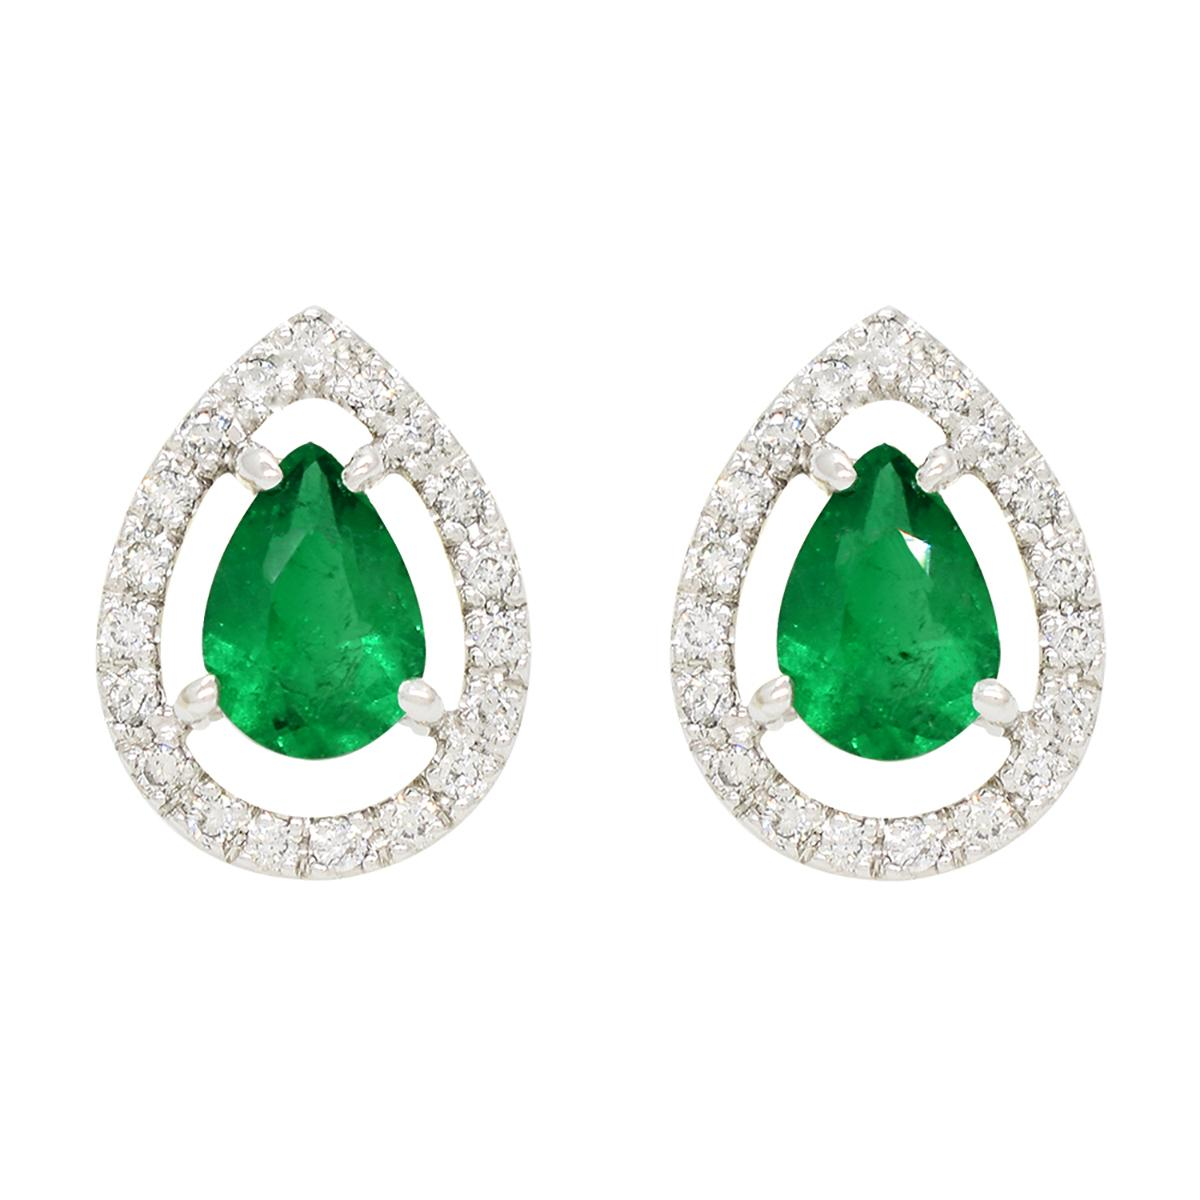 emerald-earrings-in-18k-white-gold-with-2-pear-shape-emeralds-and-diamond-halo